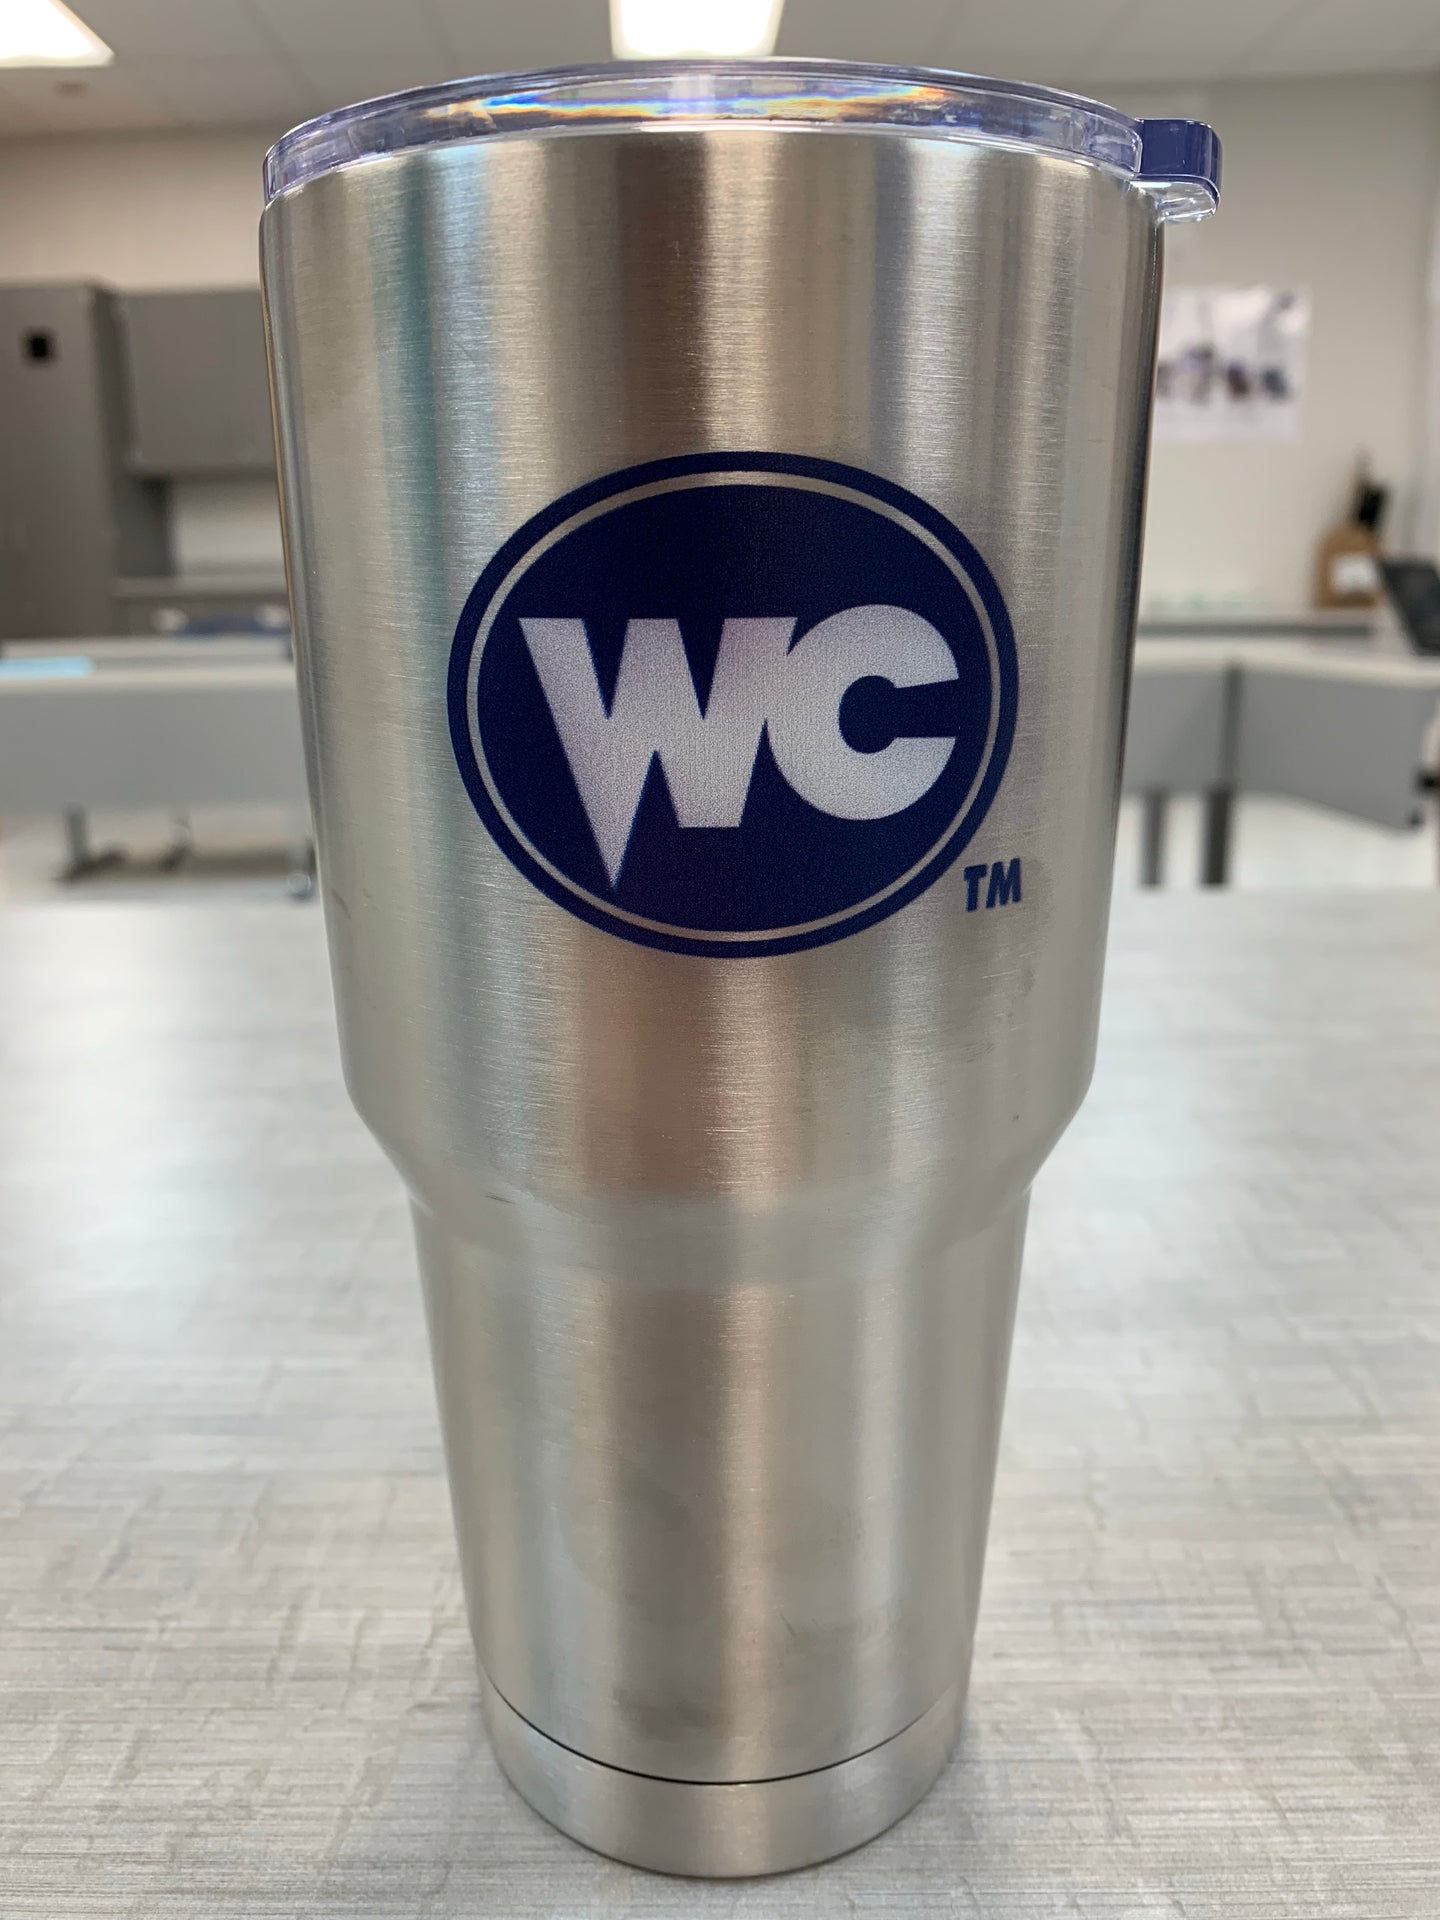 30 oz. Stainless Steel WC Tumbler